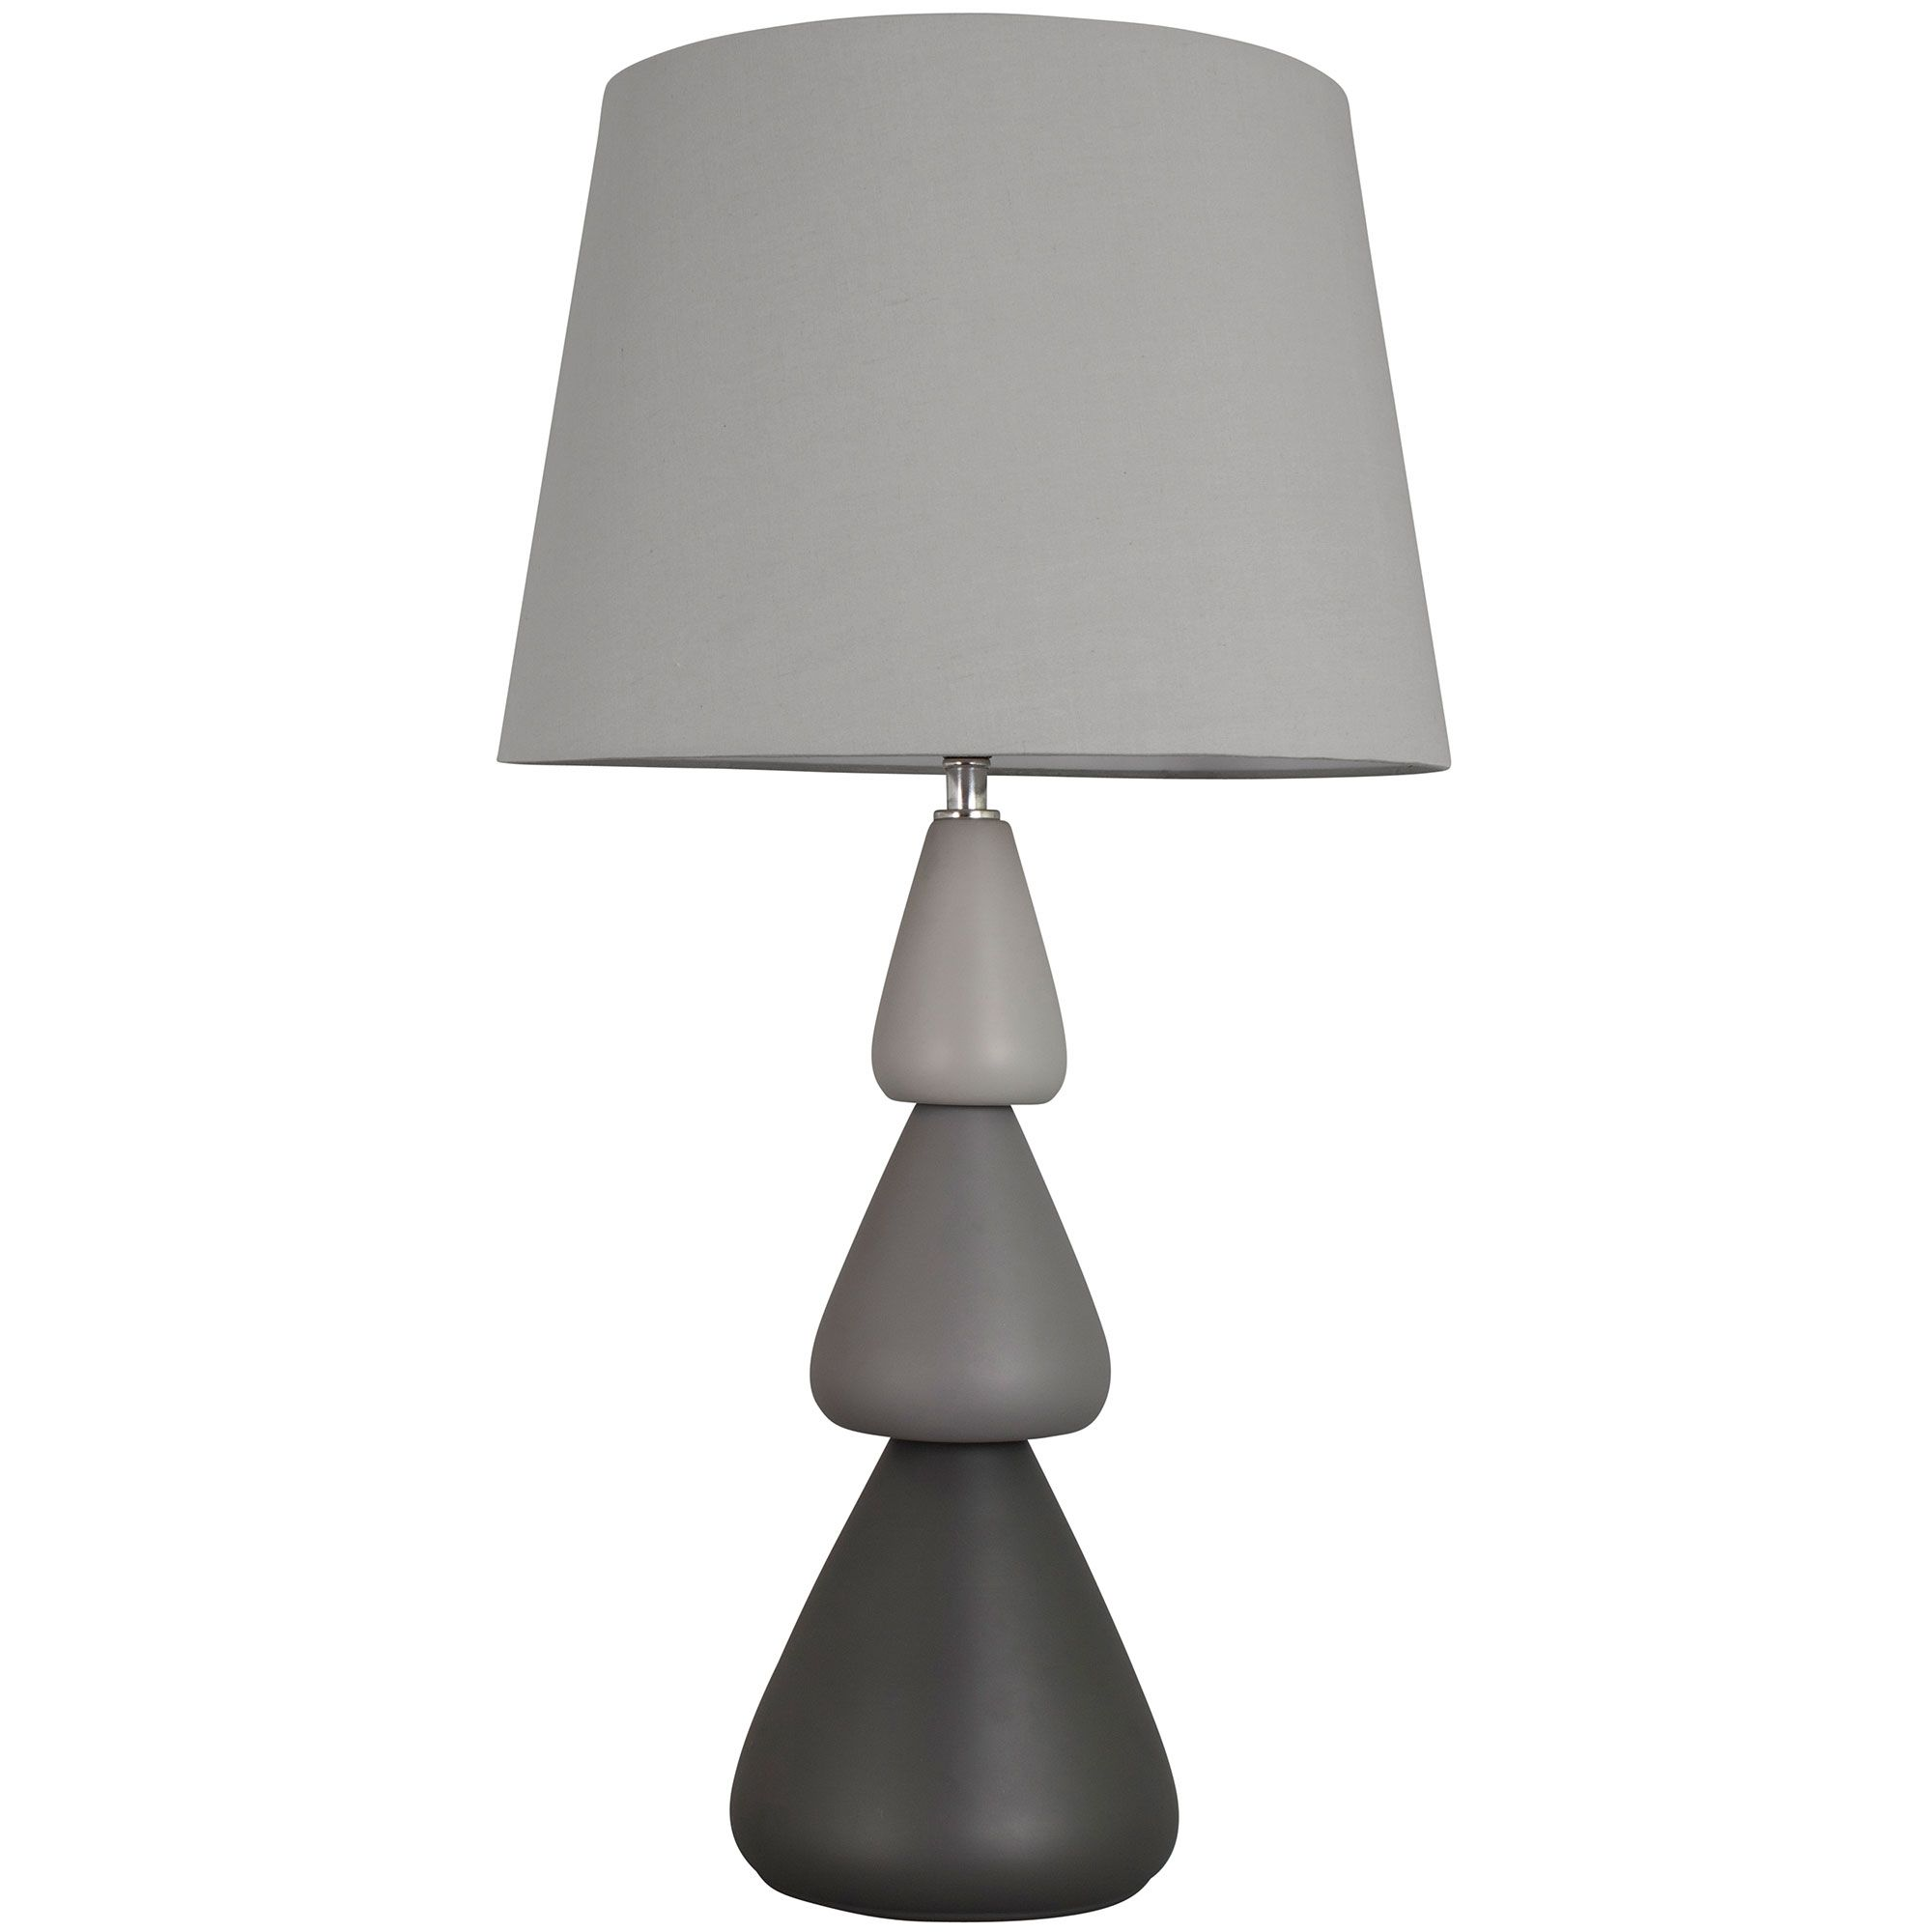 Finley 67cm Table Lamp